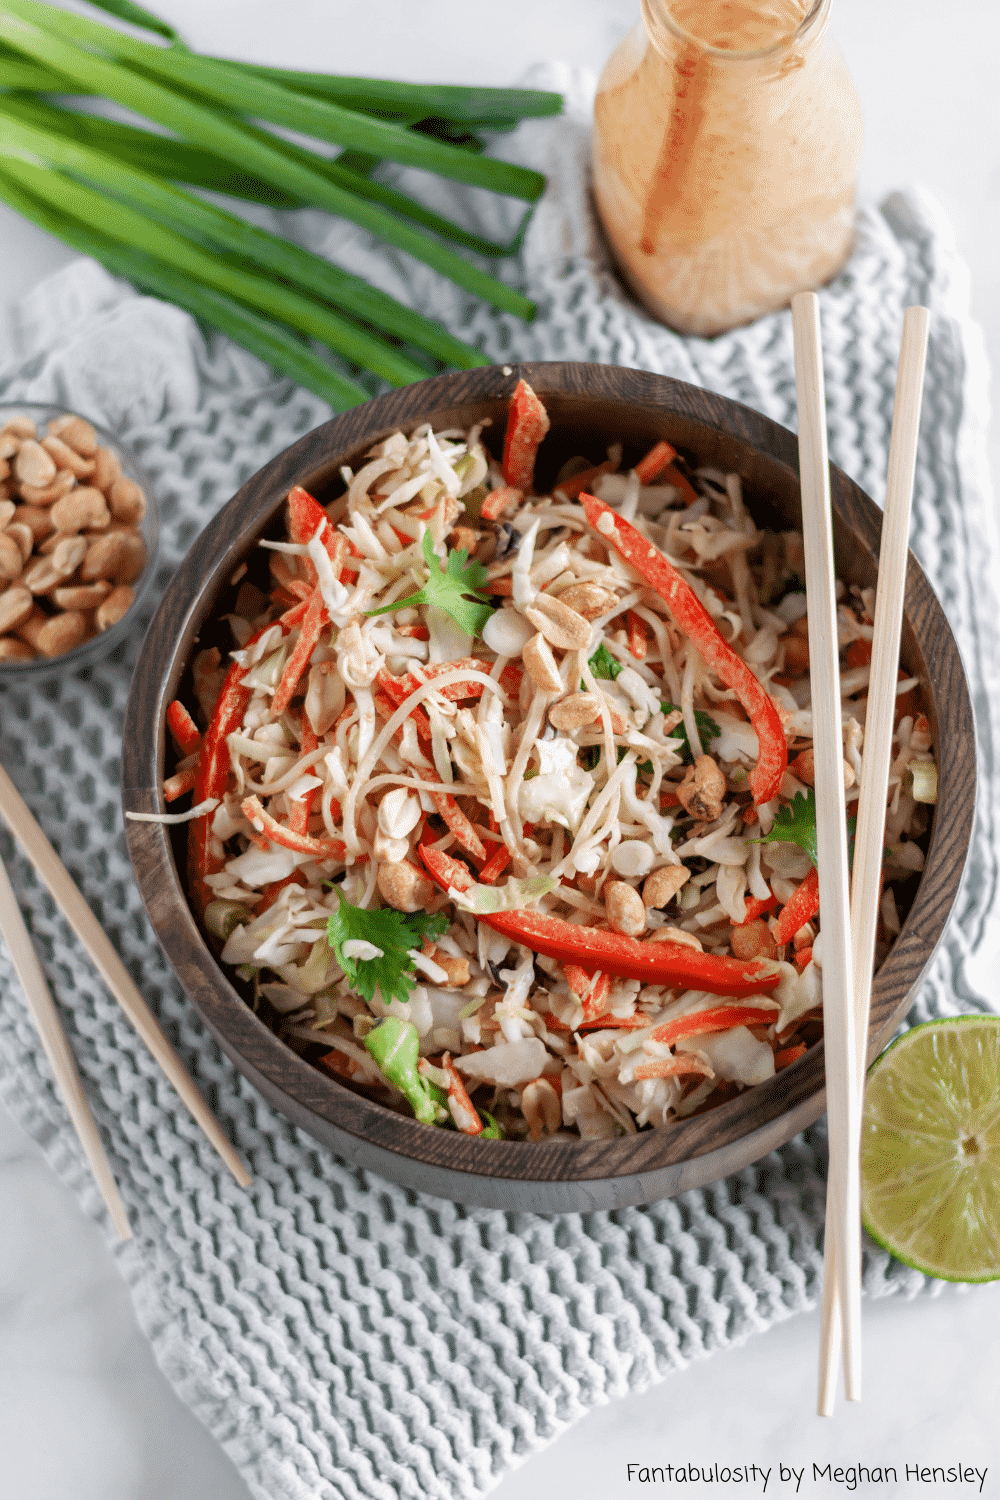 Thai Salad with Noodles and Cabbage is packed full of flavor and texture.